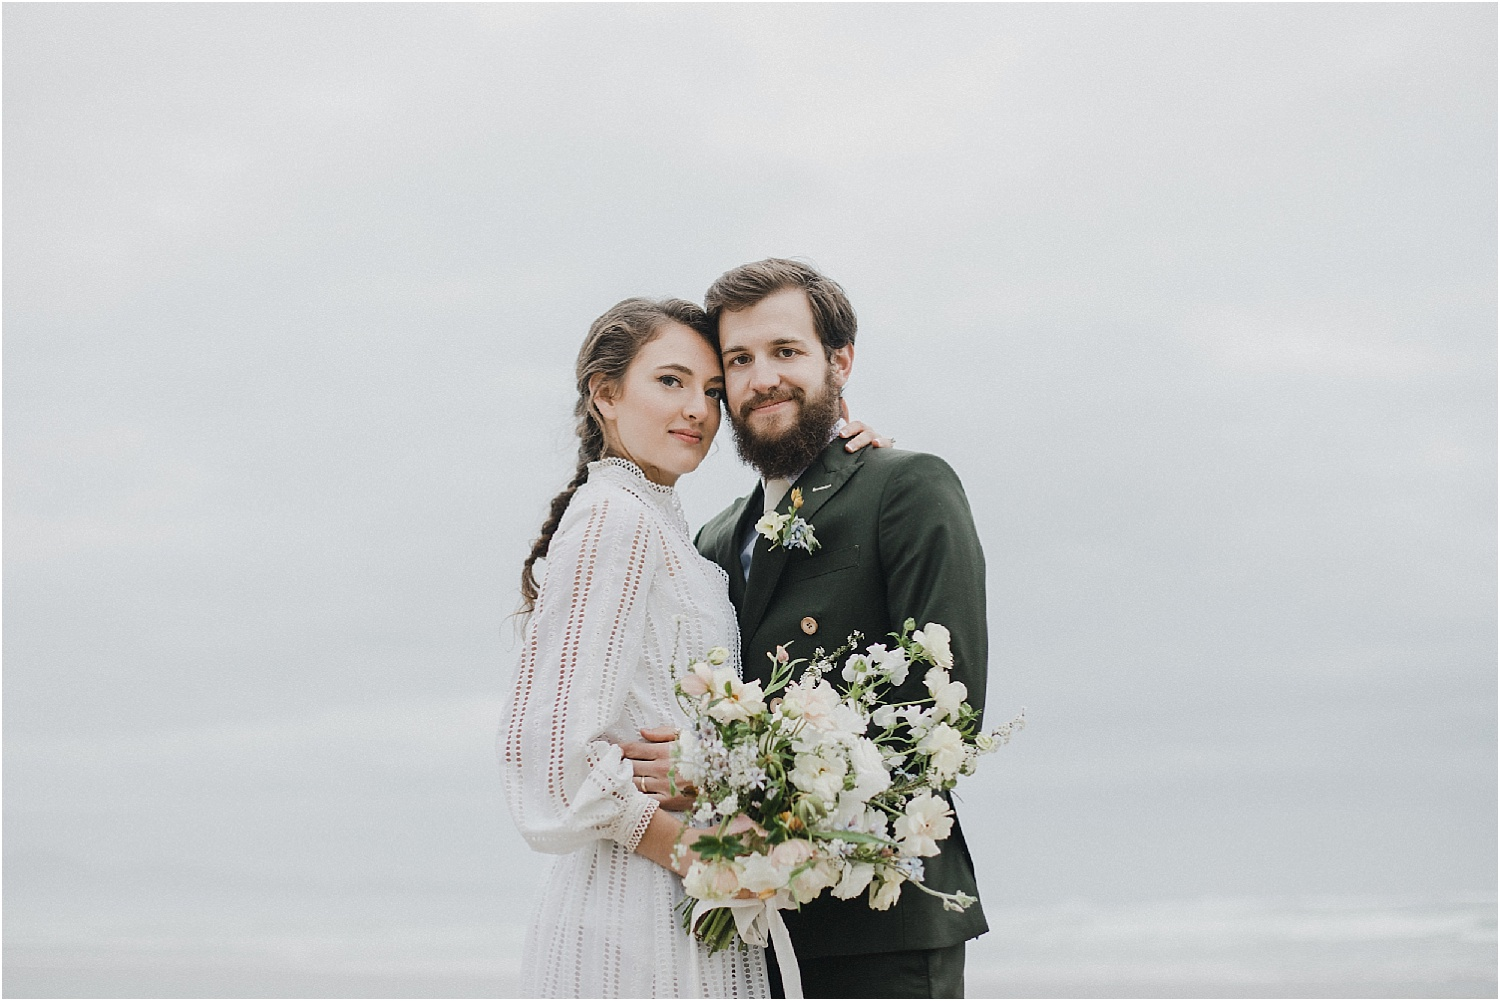 A bride and groom elope at Cannon Beach on the Oregon coast. The Oregon Coast is the perfect place for an intimate elopement or a larger wedding ceremony. Check out this couple's adventurous elopement captured by Alixann Loose Photography.